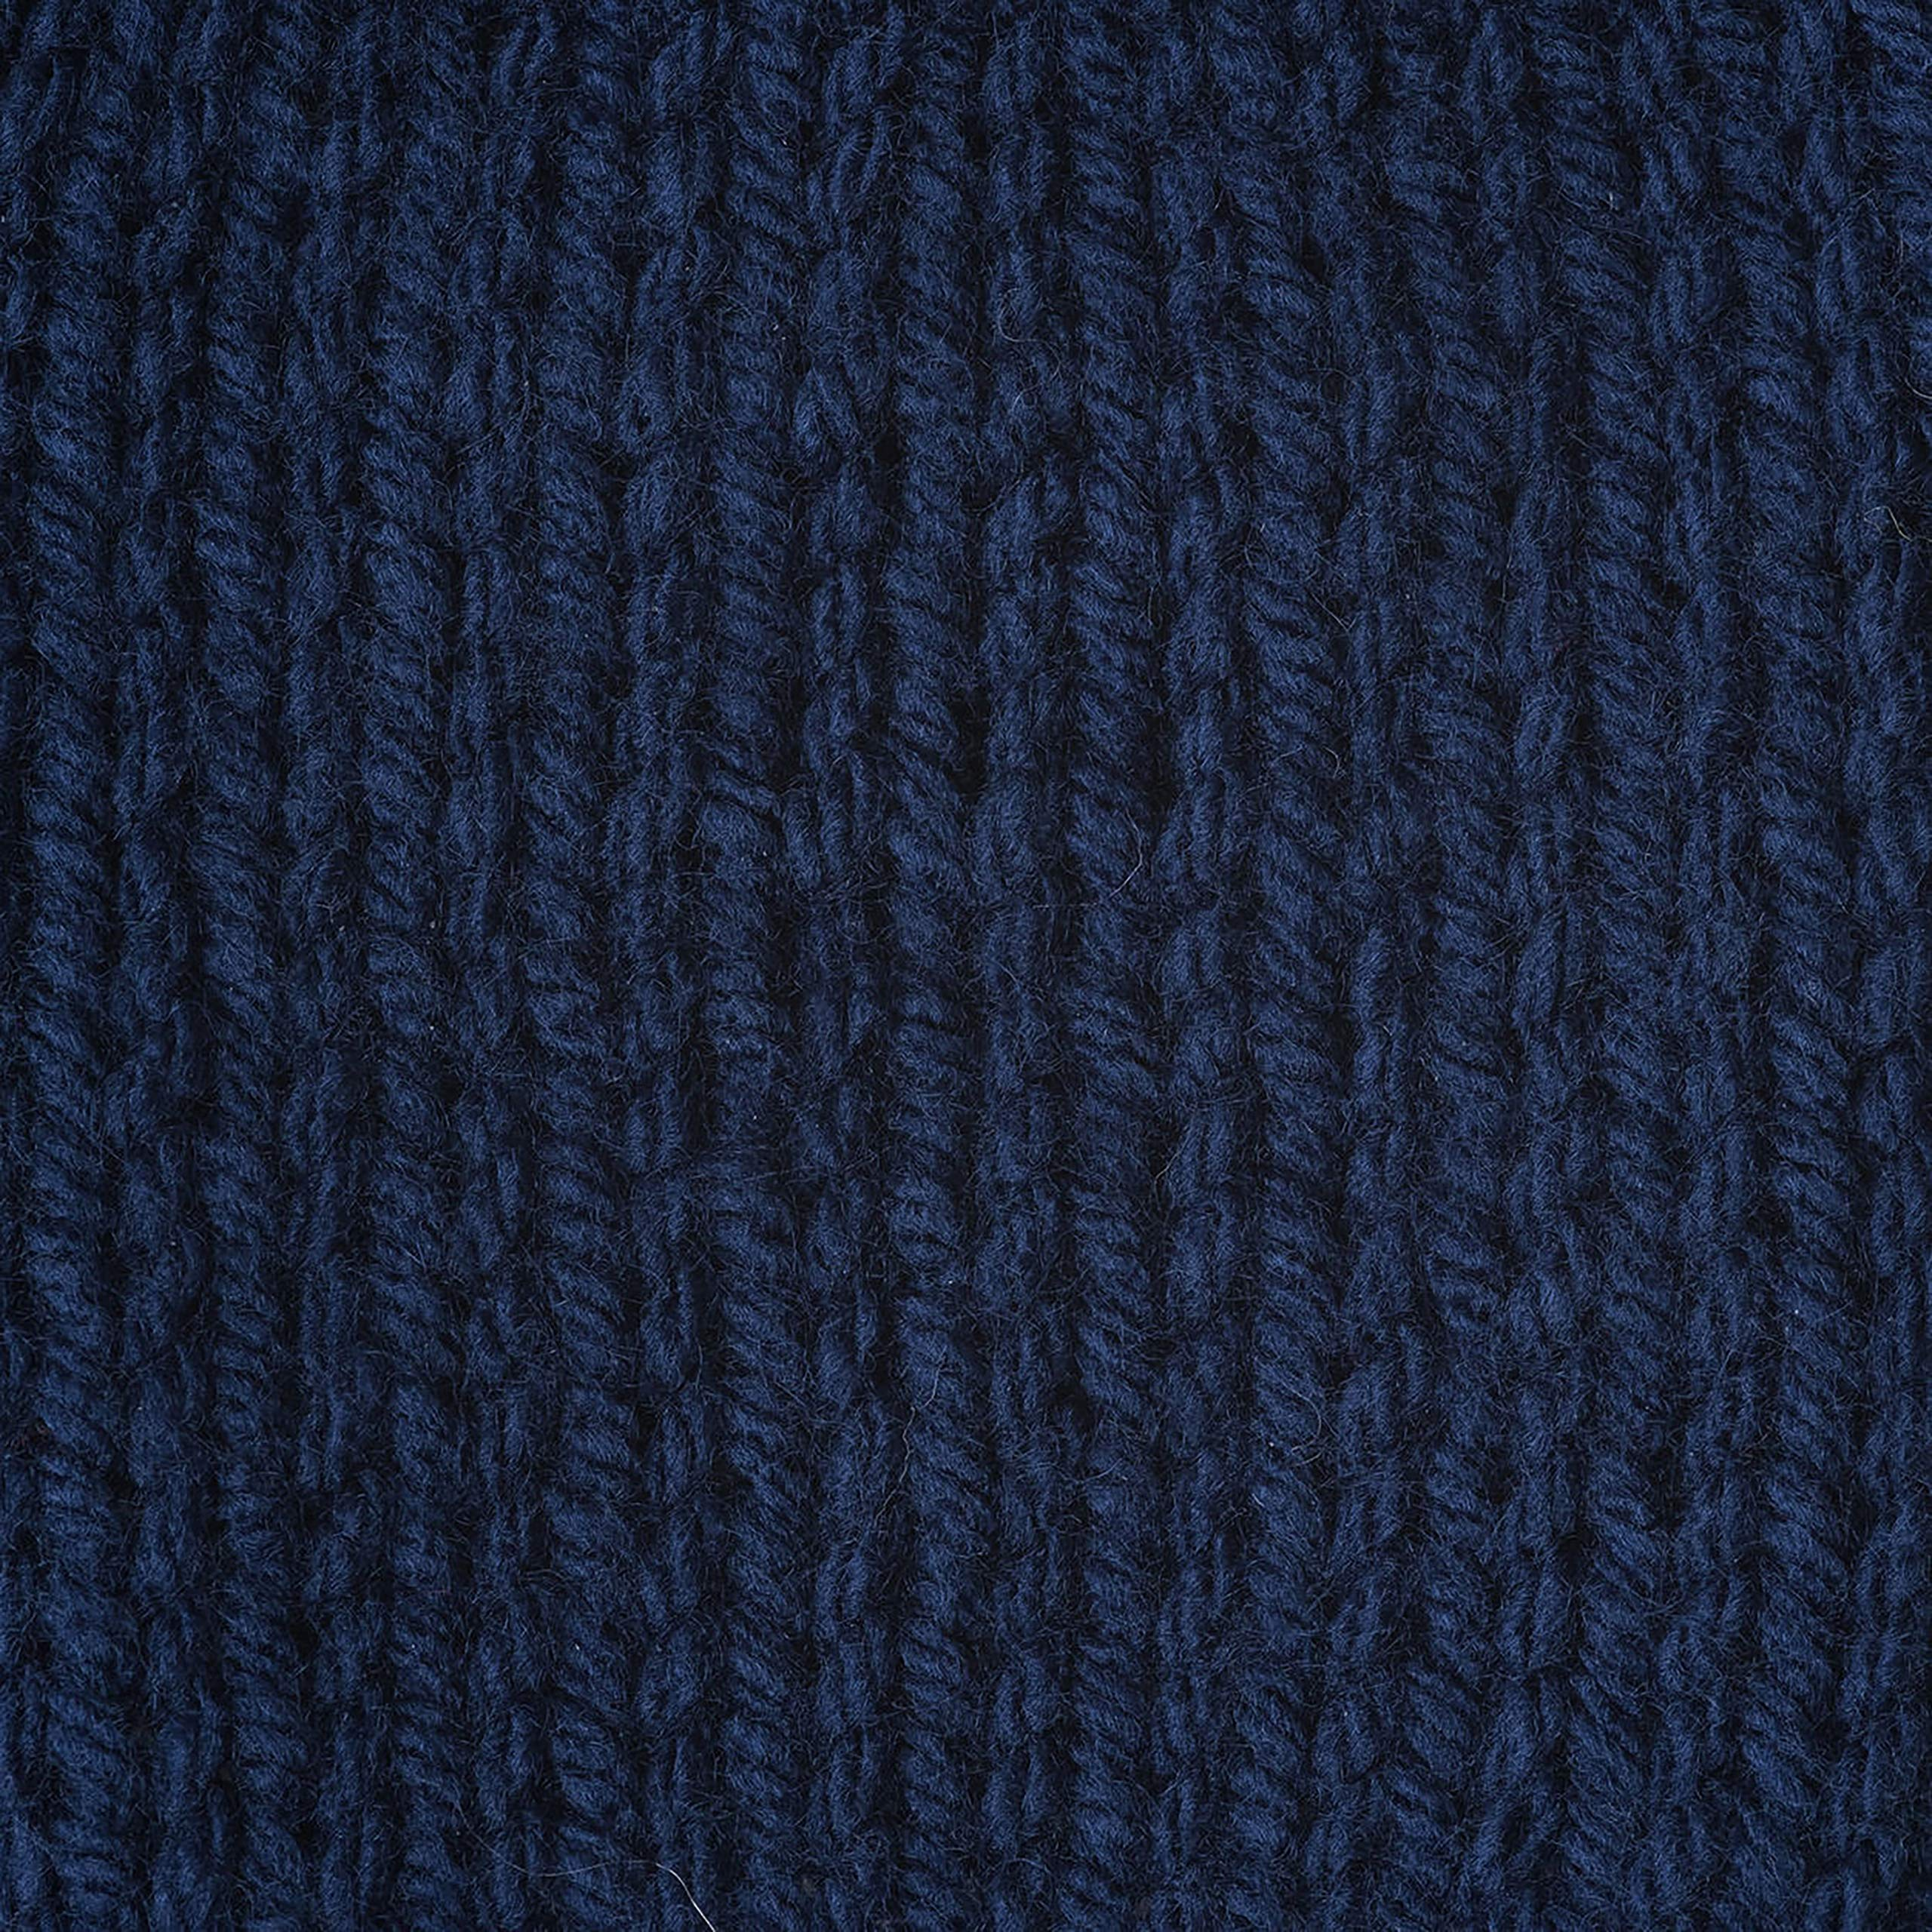 Caron 99583 One Pound Yarn-Midnight Blue, Multipack of 12, Pack by Caron (Image #4)